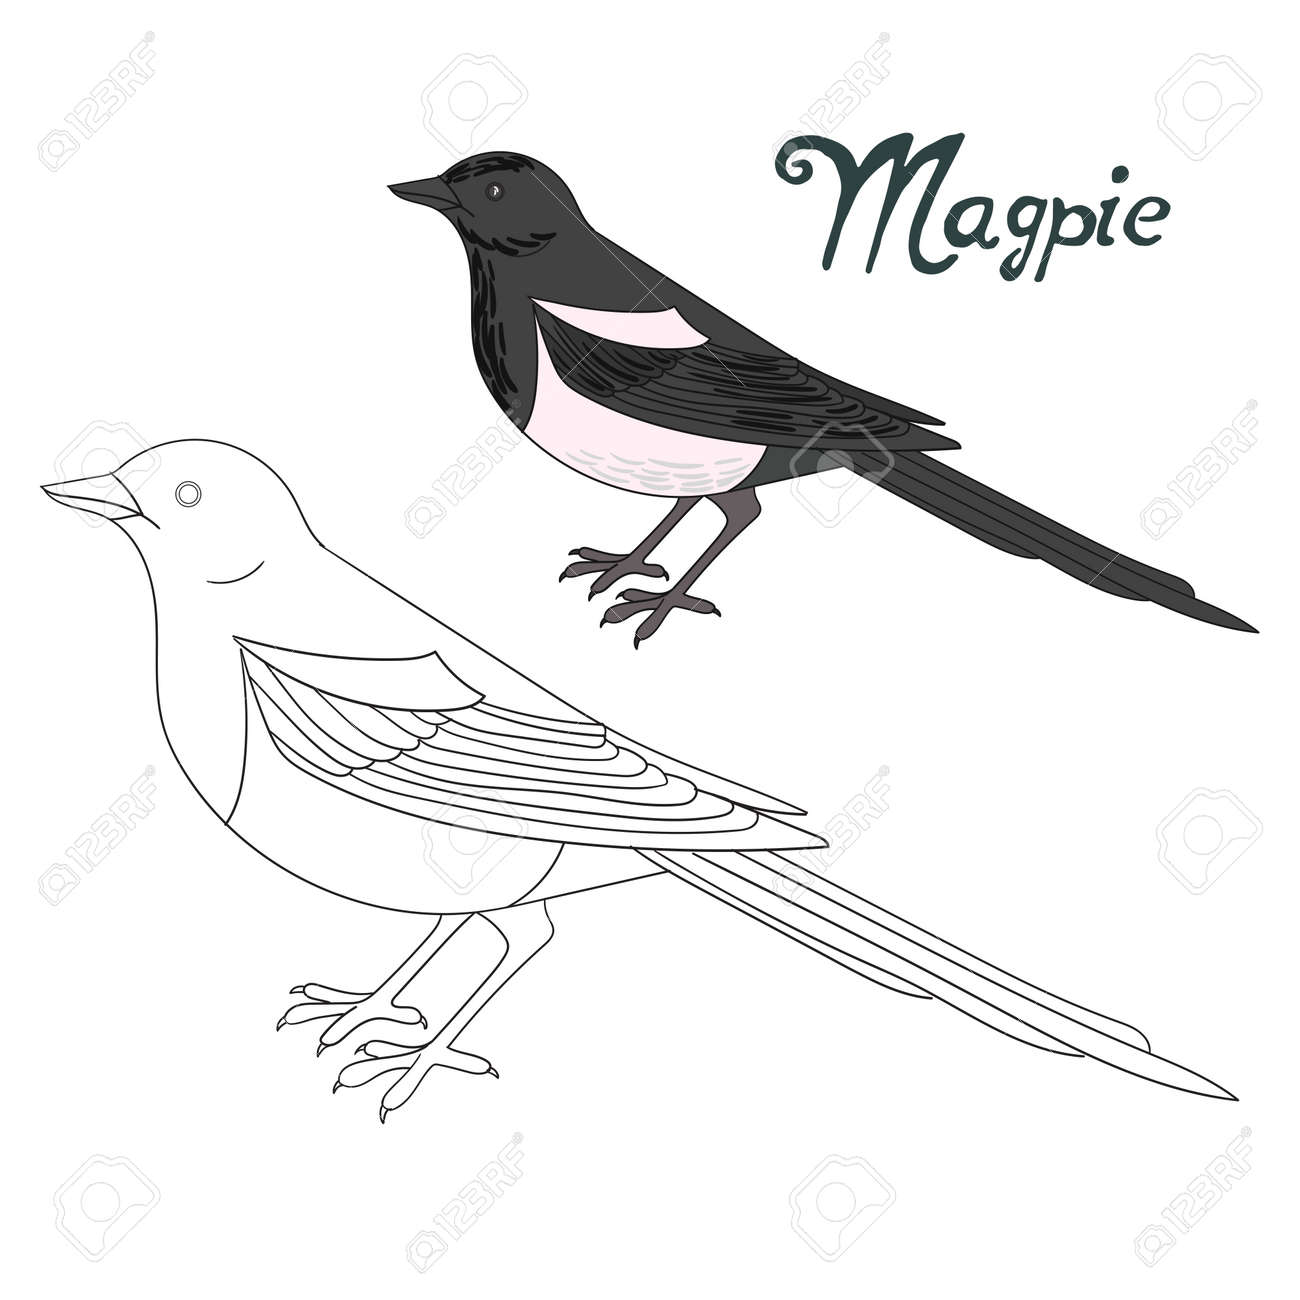 Educational Game Coloring Book Magpie Bird Cartoon Doodle Hand Drawn Vector Illustration Stock